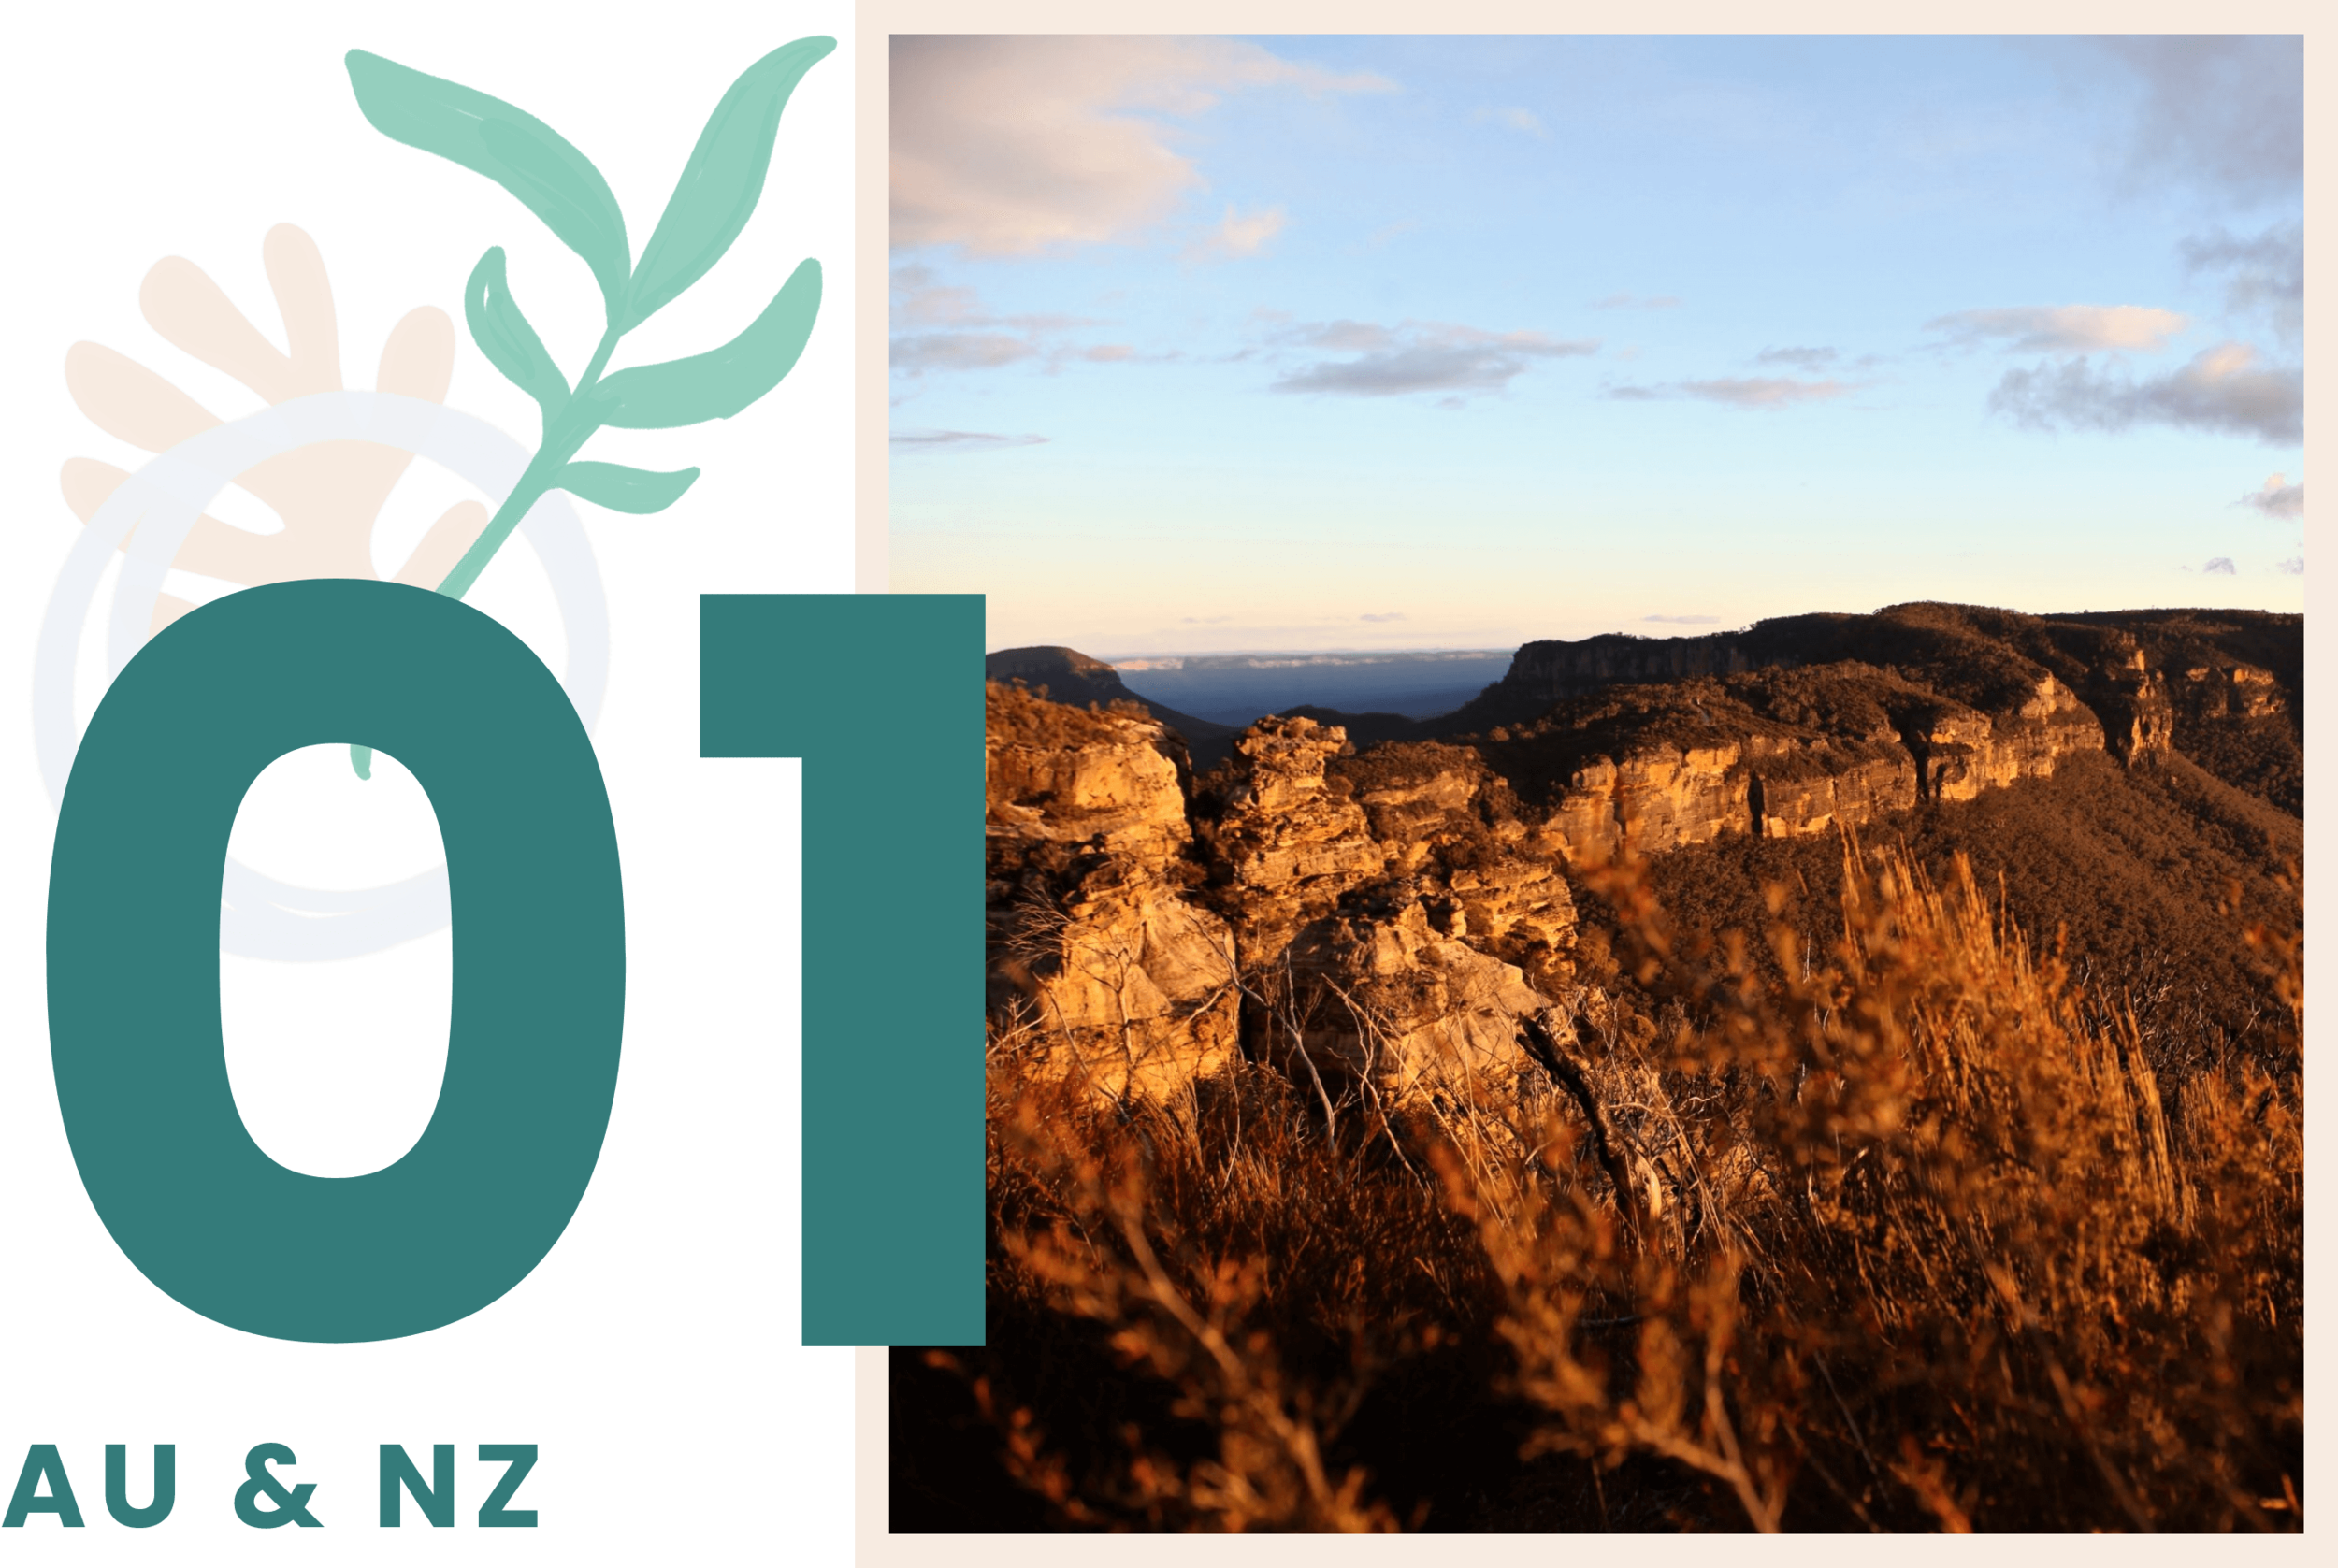 Australia and New Zealand travel guides - Pull on your hiking boots, grab your daypack, and get ready for a bit of outdoor adventure — roads trips, train travel, hiking trails, and more! Discover the very best destinations across Australia and New Zealand.CHECK OUT THE BLOG →